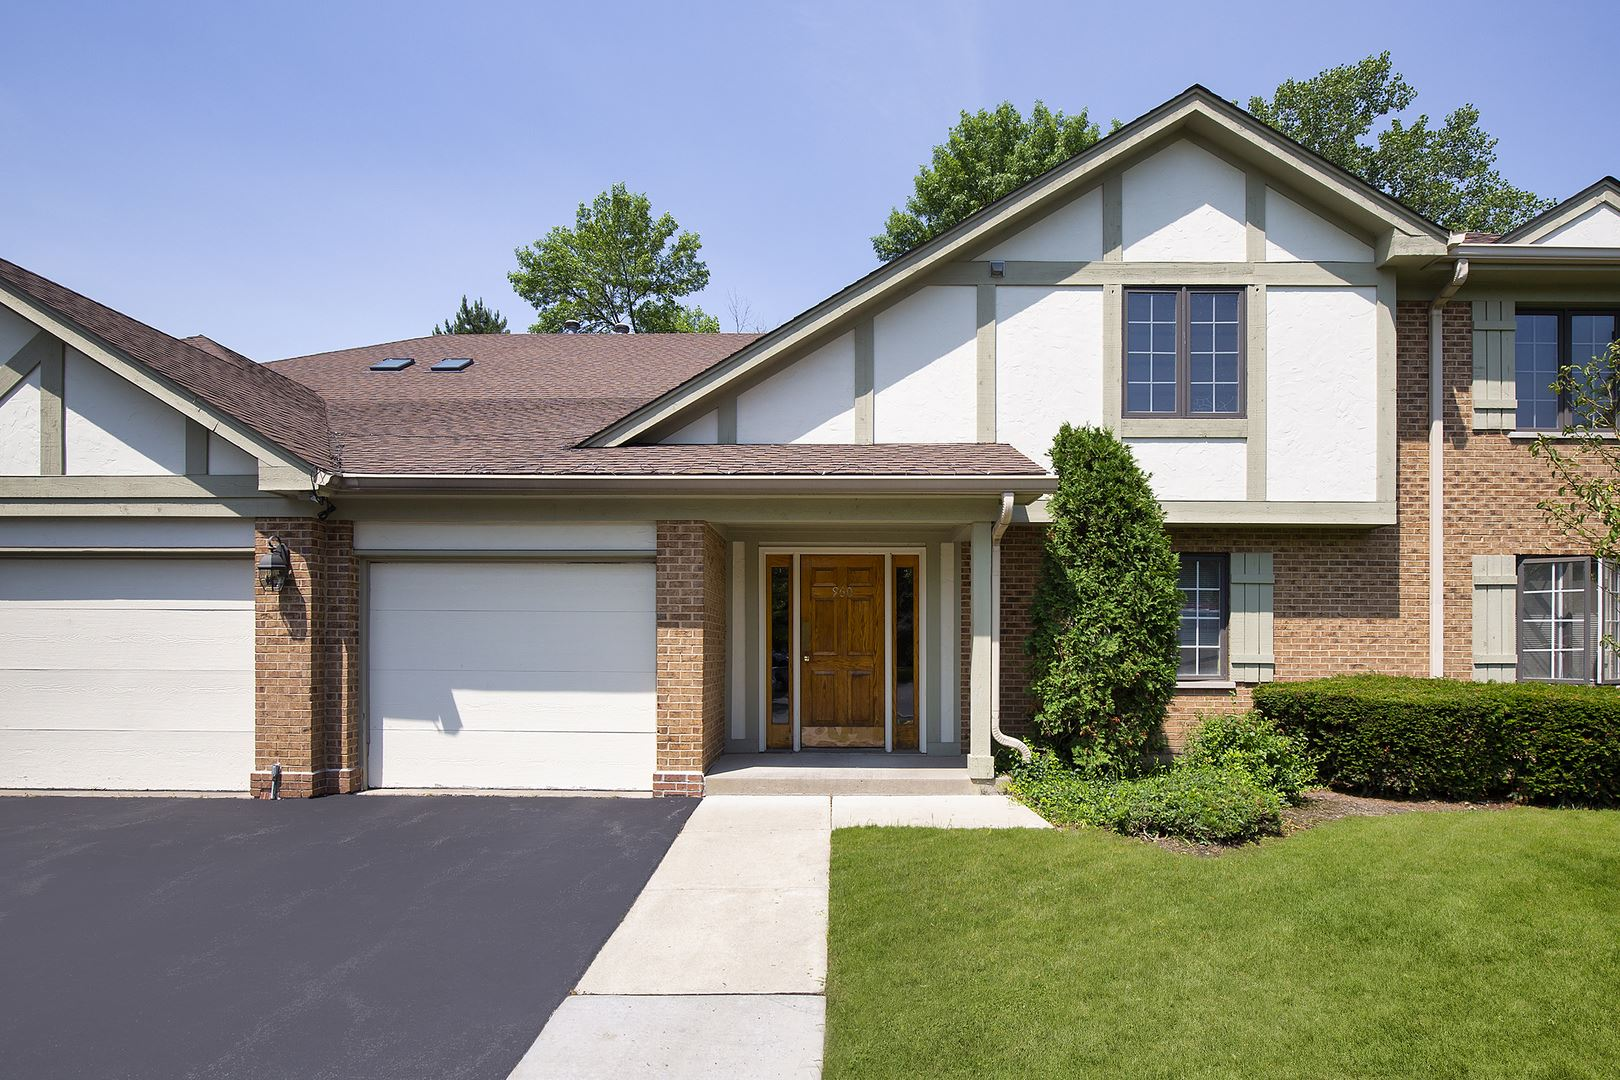 960 Ivy Lane #C, Deerfield, IL 60015 - #: 10707326